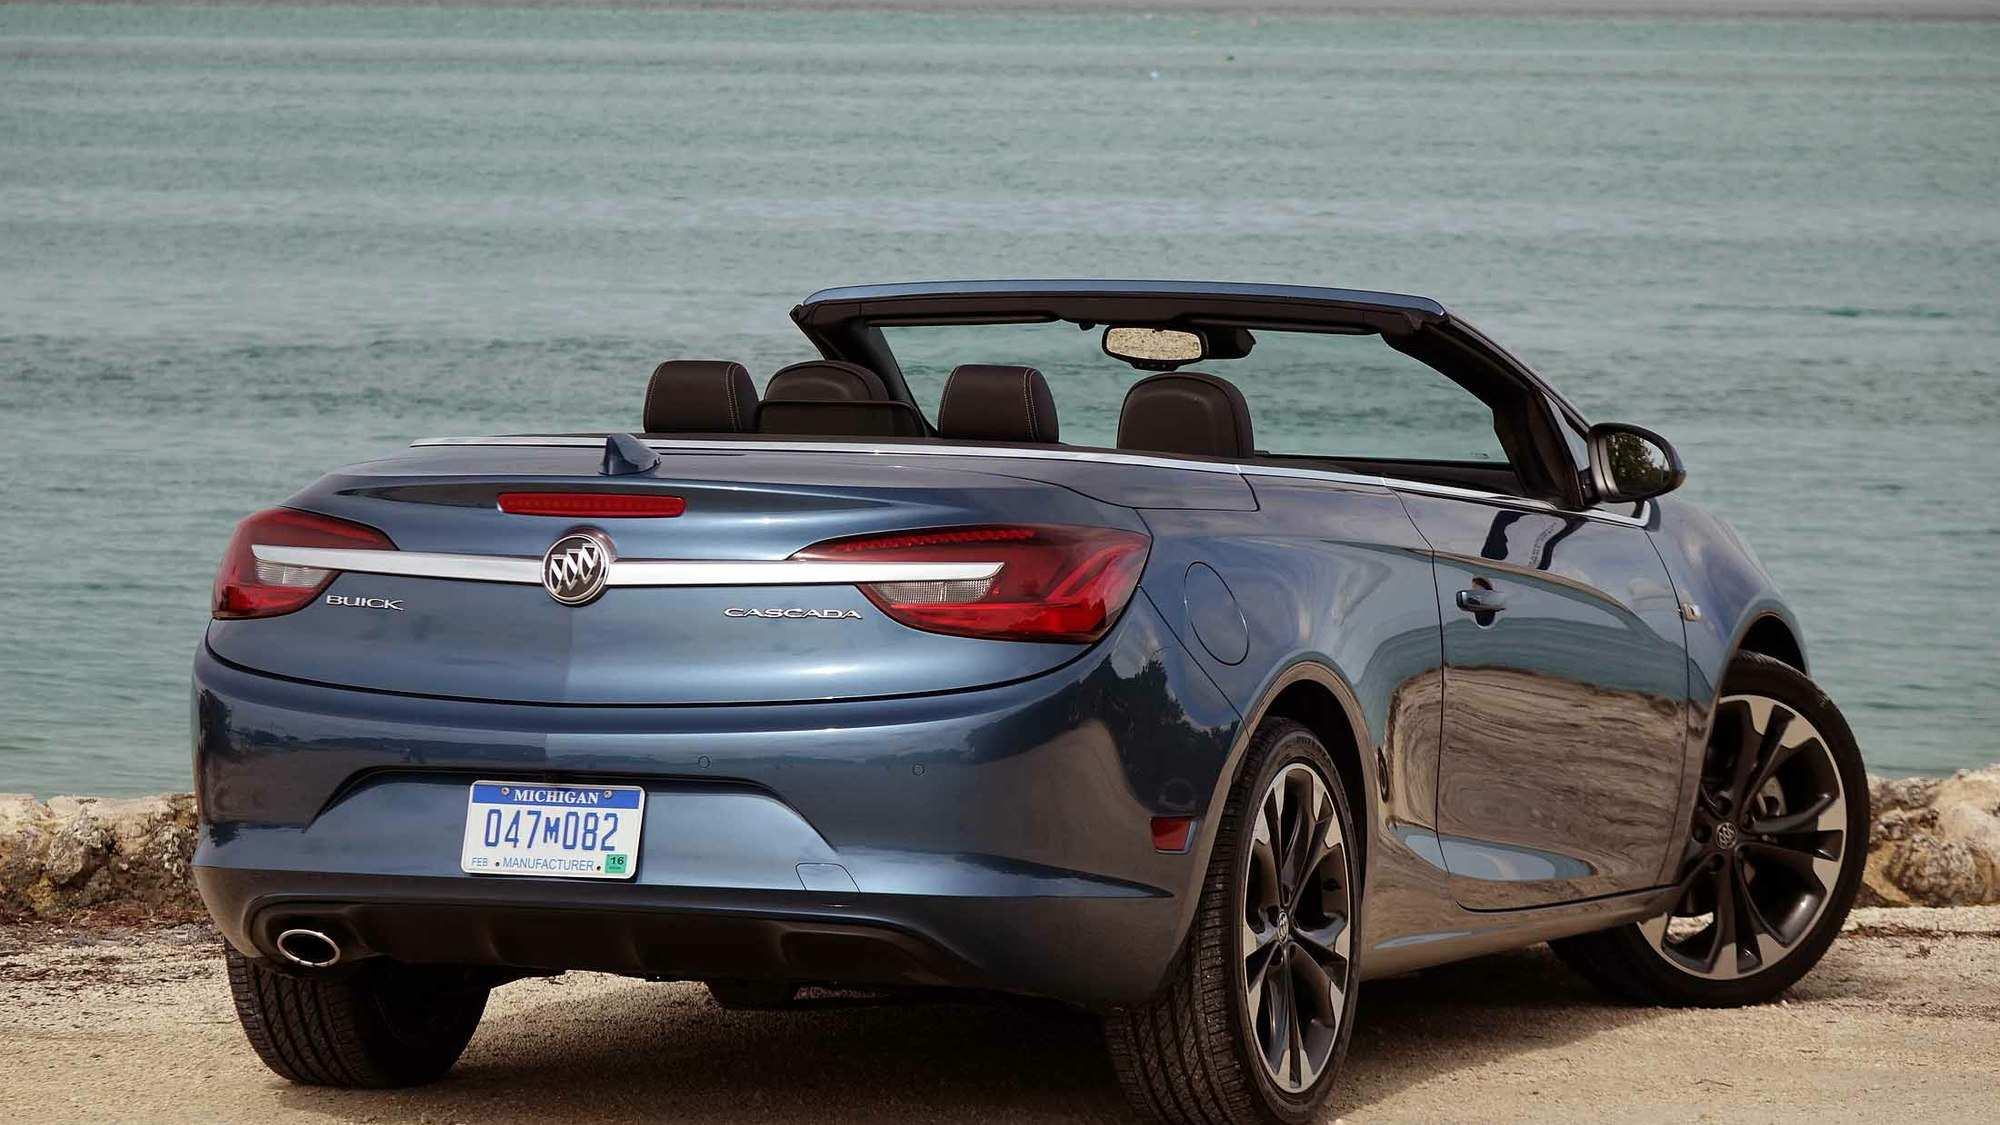 15 Concept of New 2019 Buick Cascada Release Date Spy Shoot Price for New 2019 Buick Cascada Release Date Spy Shoot